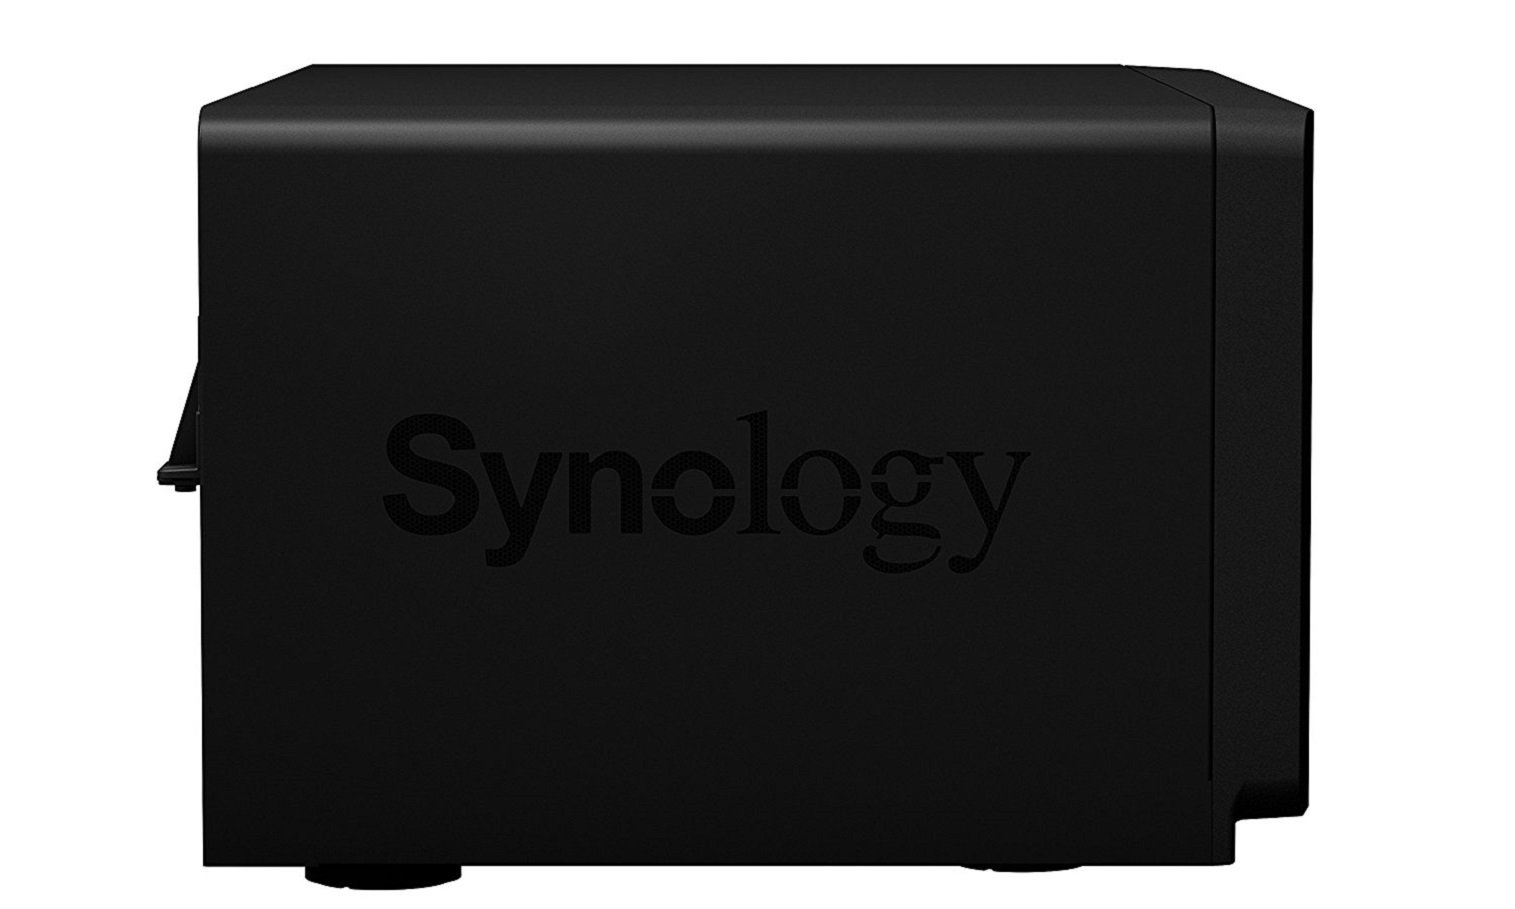 Synology DS1817+ (8GB) 8 - bay NAS Disk Station (Diskless) by Synology (Image #5)